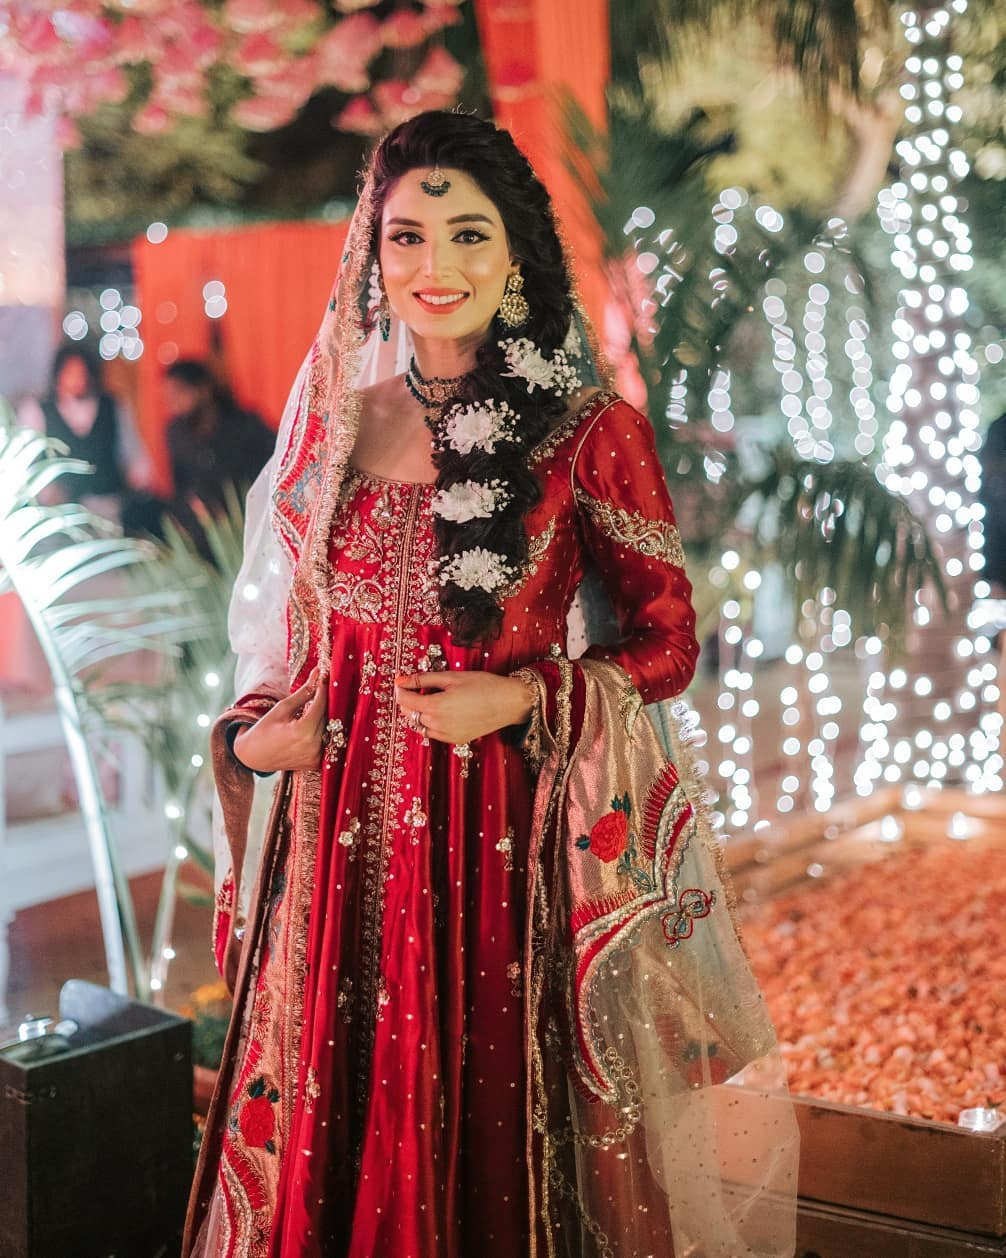 Beautiful Zainab Abbas Wedding Pictures